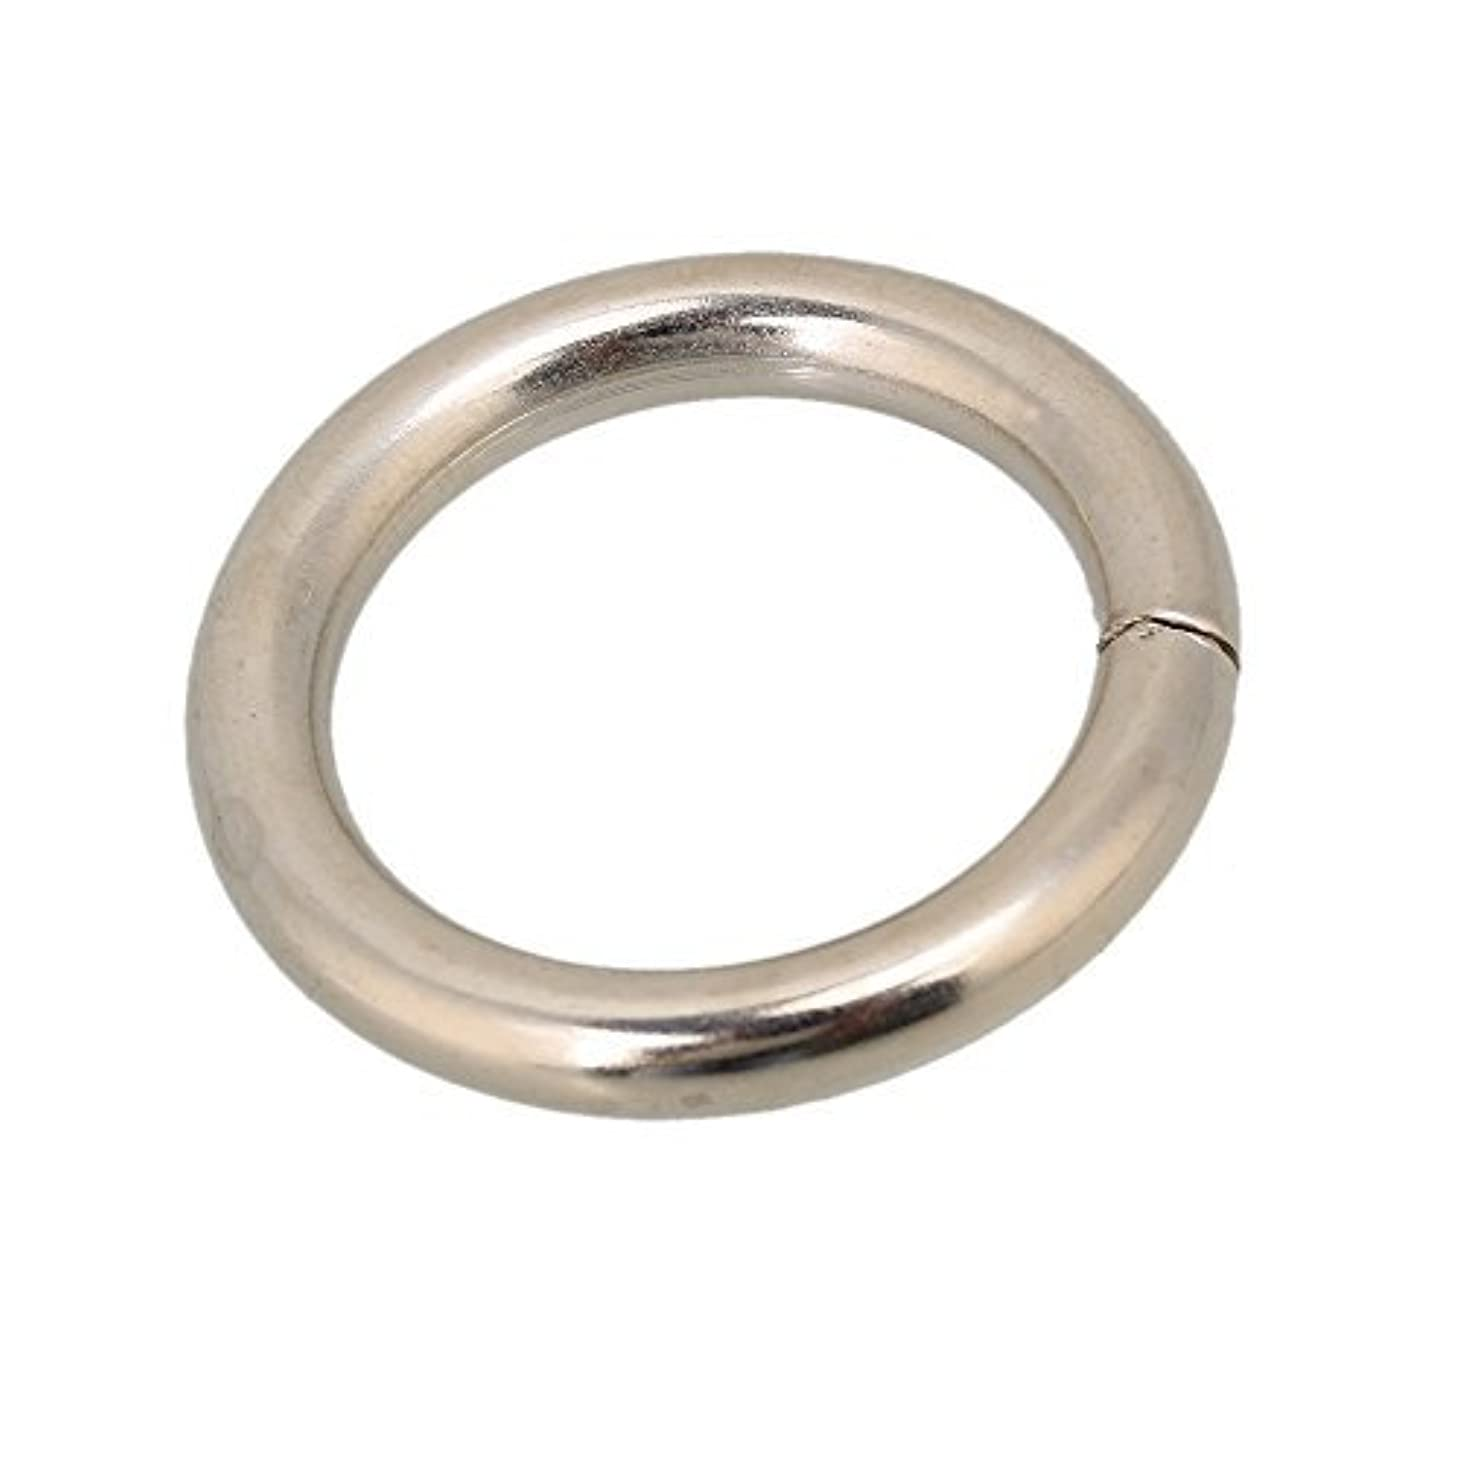 Indian Accent 1 Inch Silver Color O-Ring for Webbing Strapping Flat Cords Belting Leather Craft (Pack of 25)